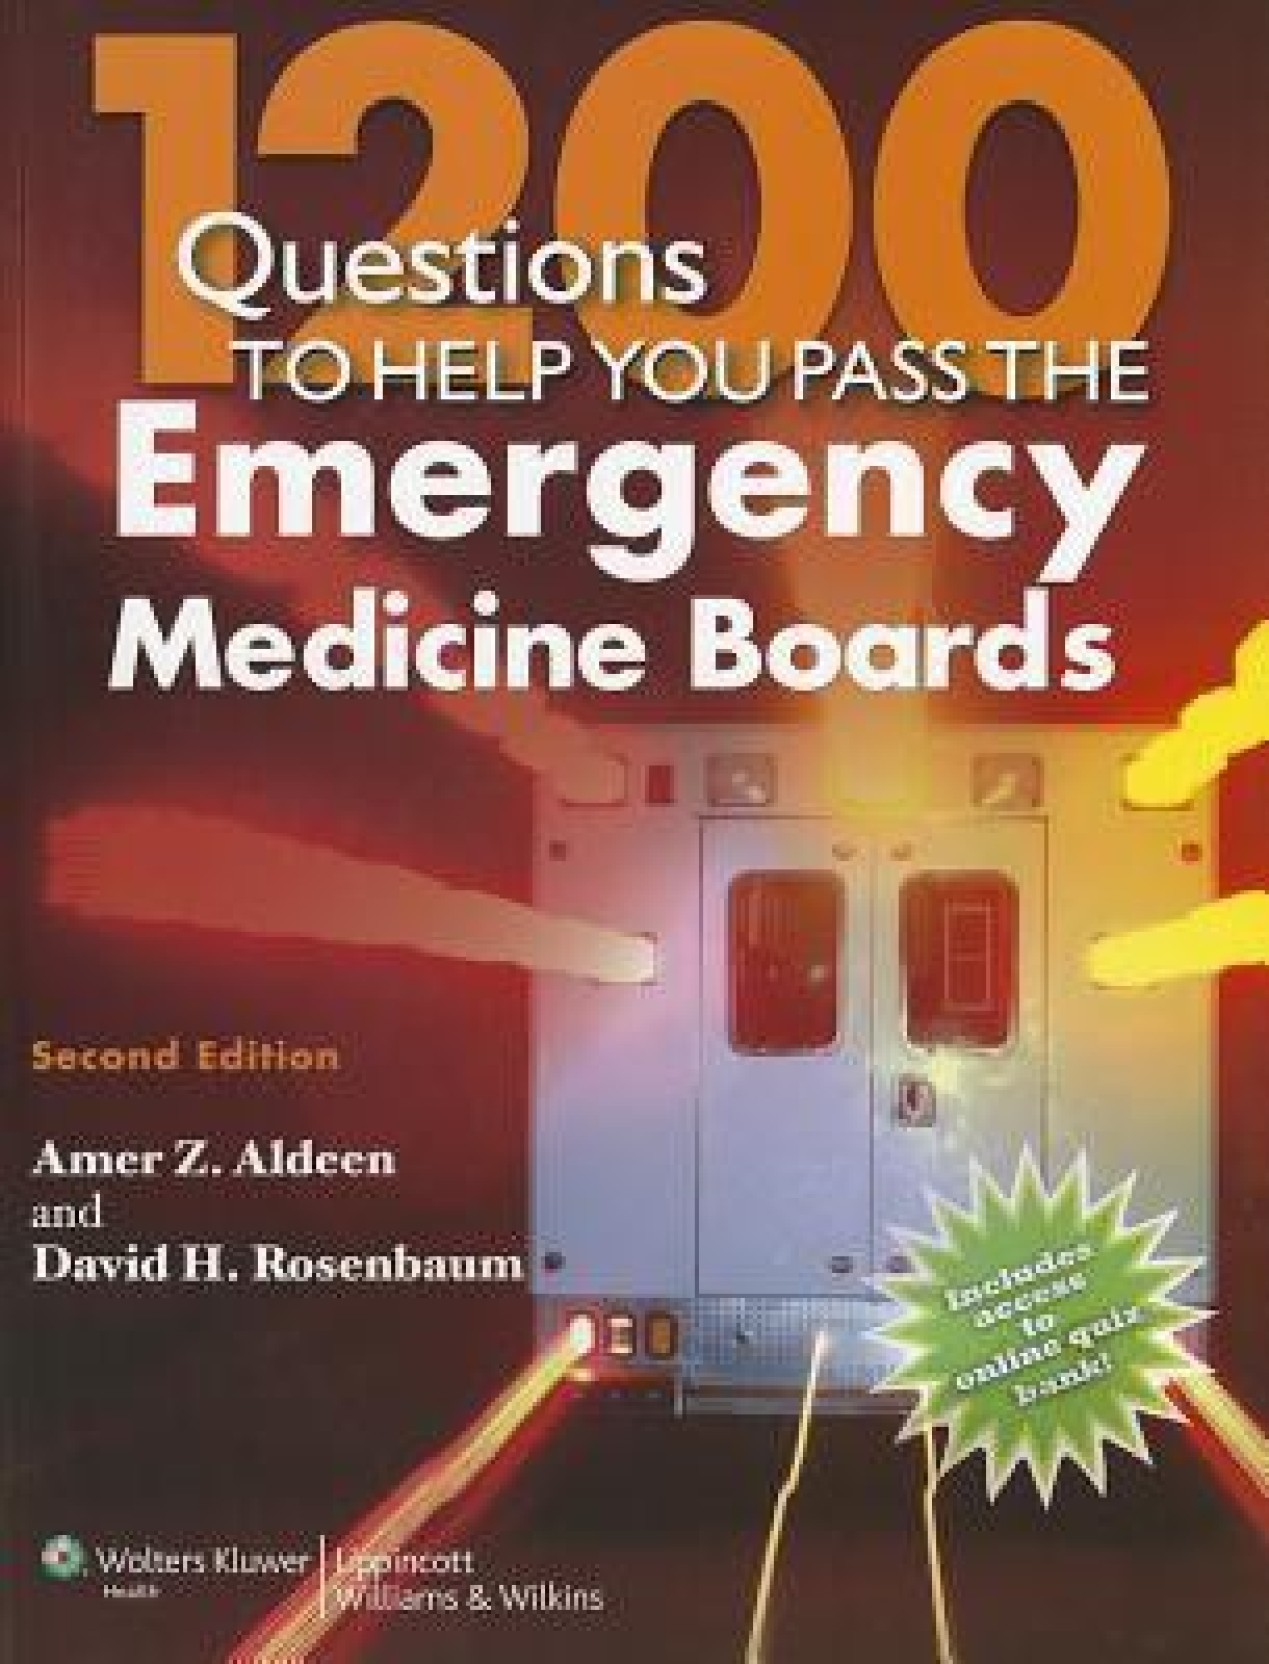 1200 Questions to Help You Pass the Emergency Medicine Boards. Home